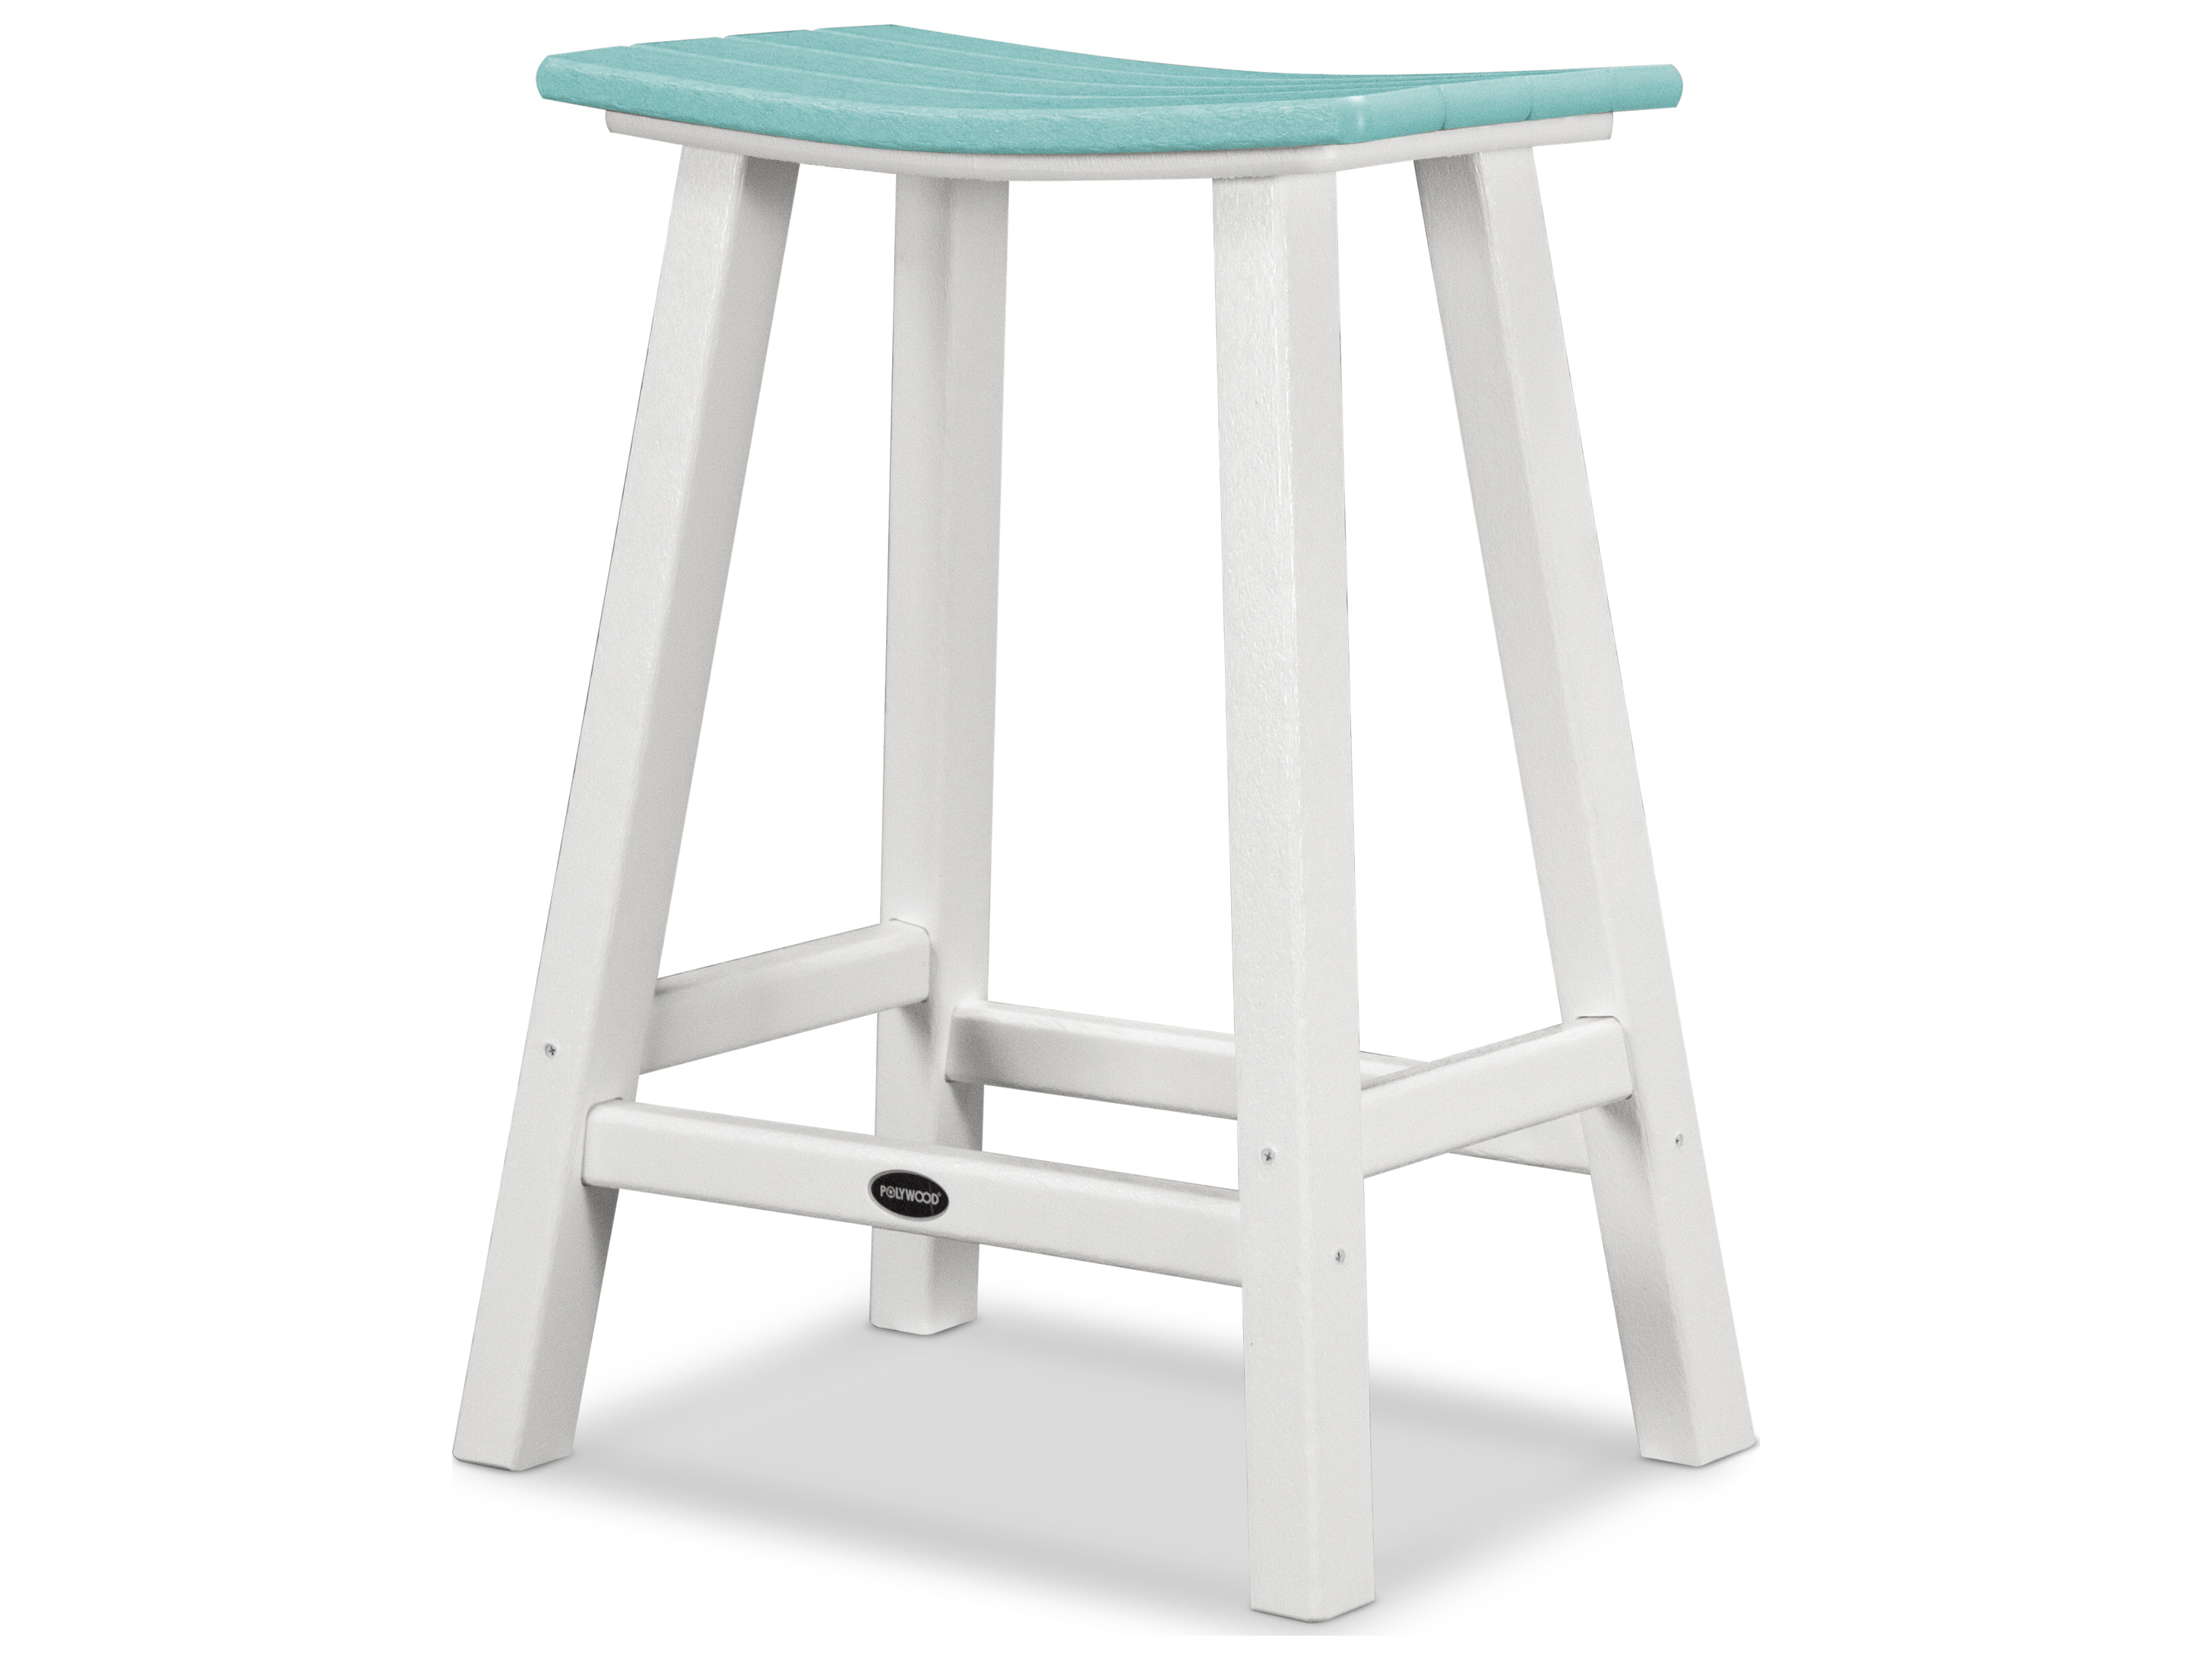 Polywood 174 Contempo Recycled Plastic Saddle 24 Bar Stool